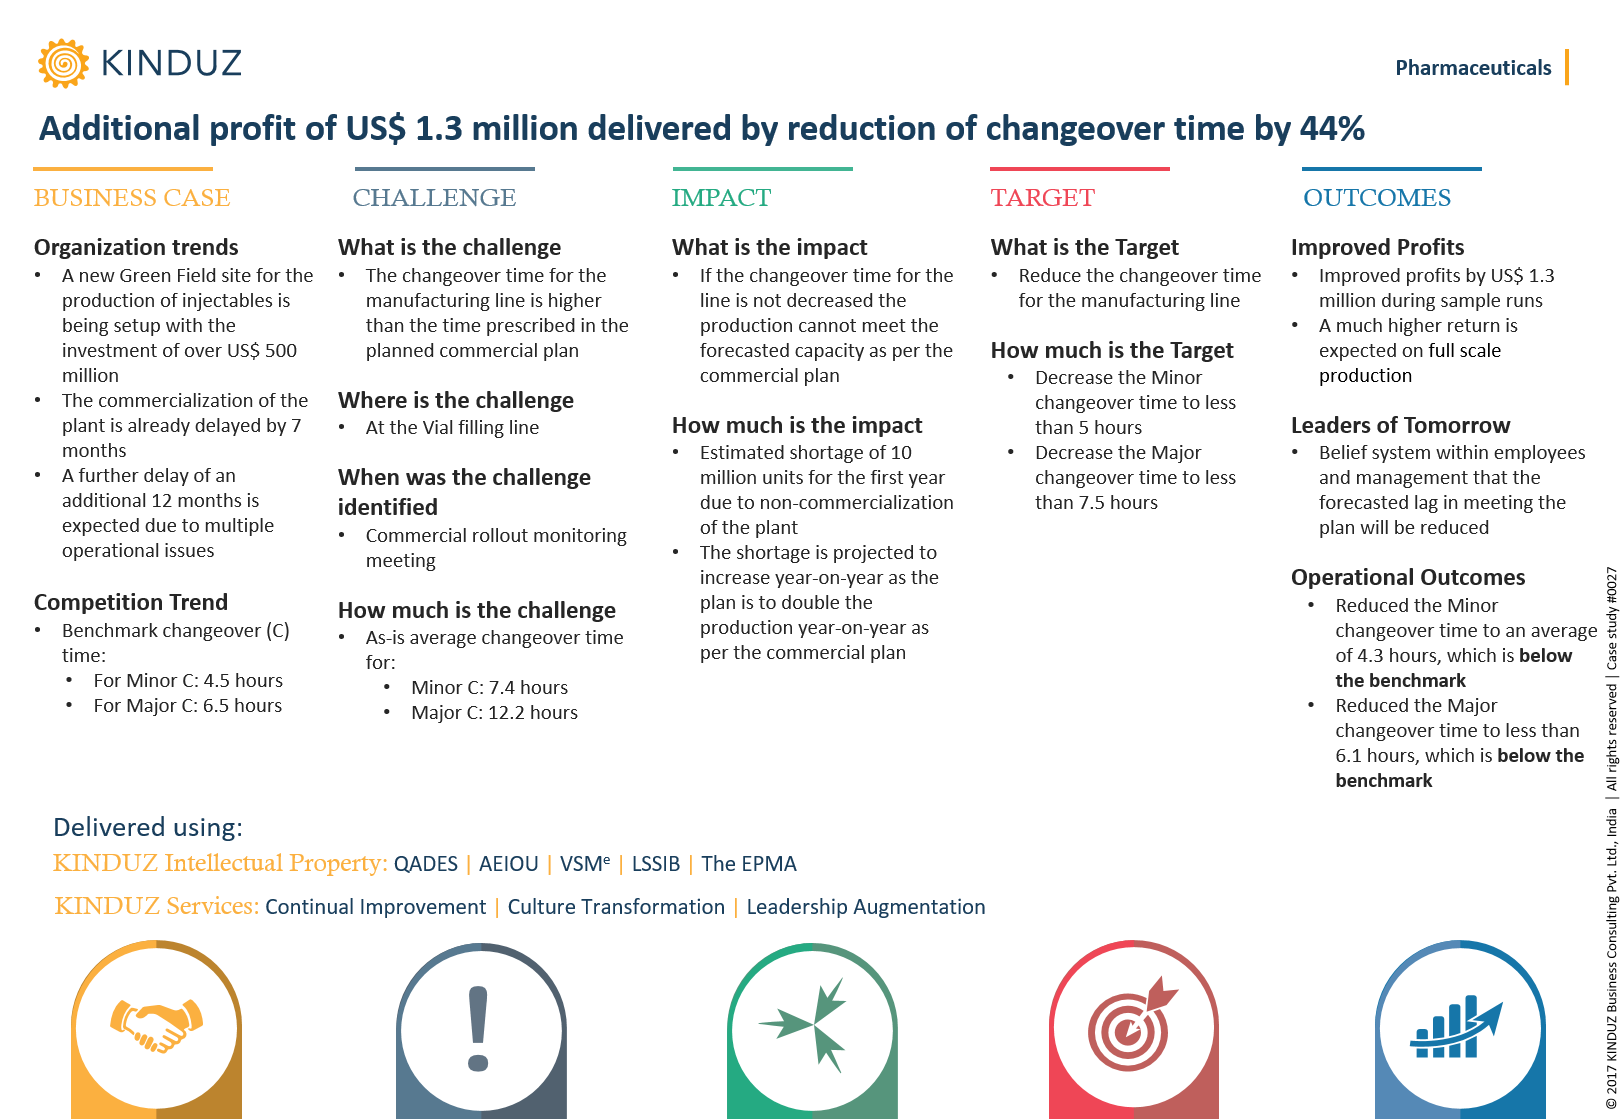 additional-profit-of-us-1.3-million-delivered-by-reduction-of-changeover-time-by-44